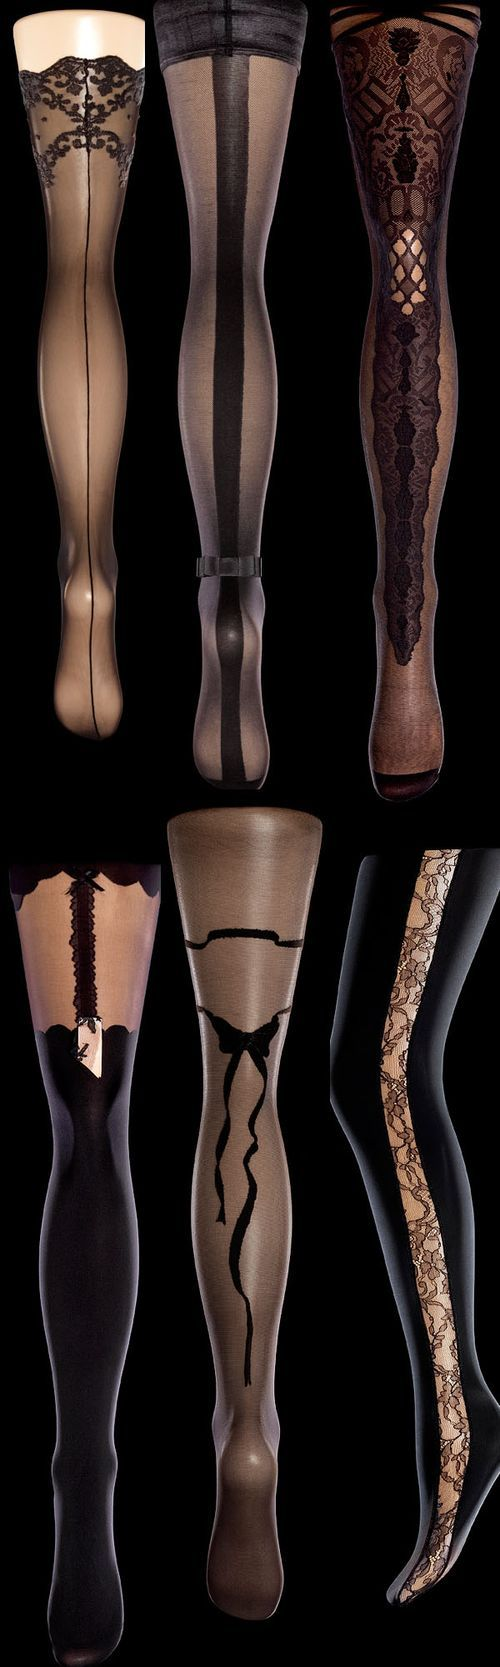 0ad61777b A collection of sexy tights are a must have....love to get creative and  make my skirt suits look even better. ☺